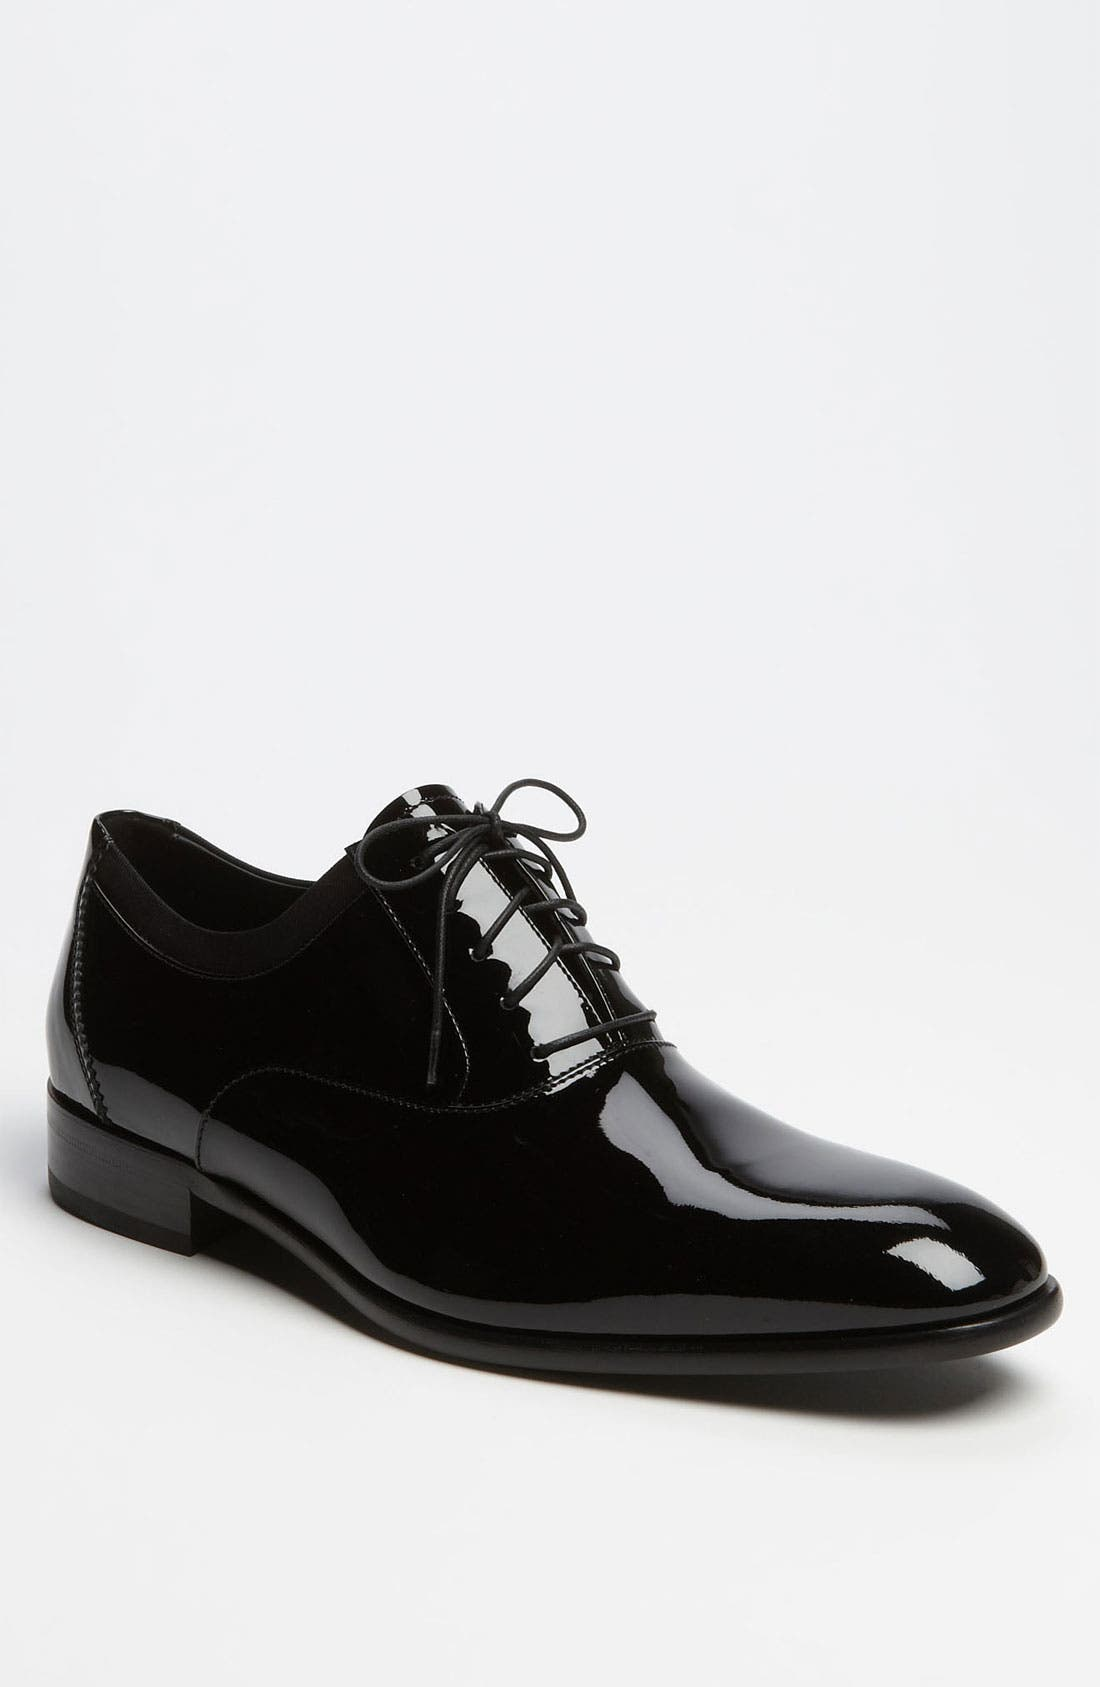 Salvatore Ferragamo 'Aiden' Oxford